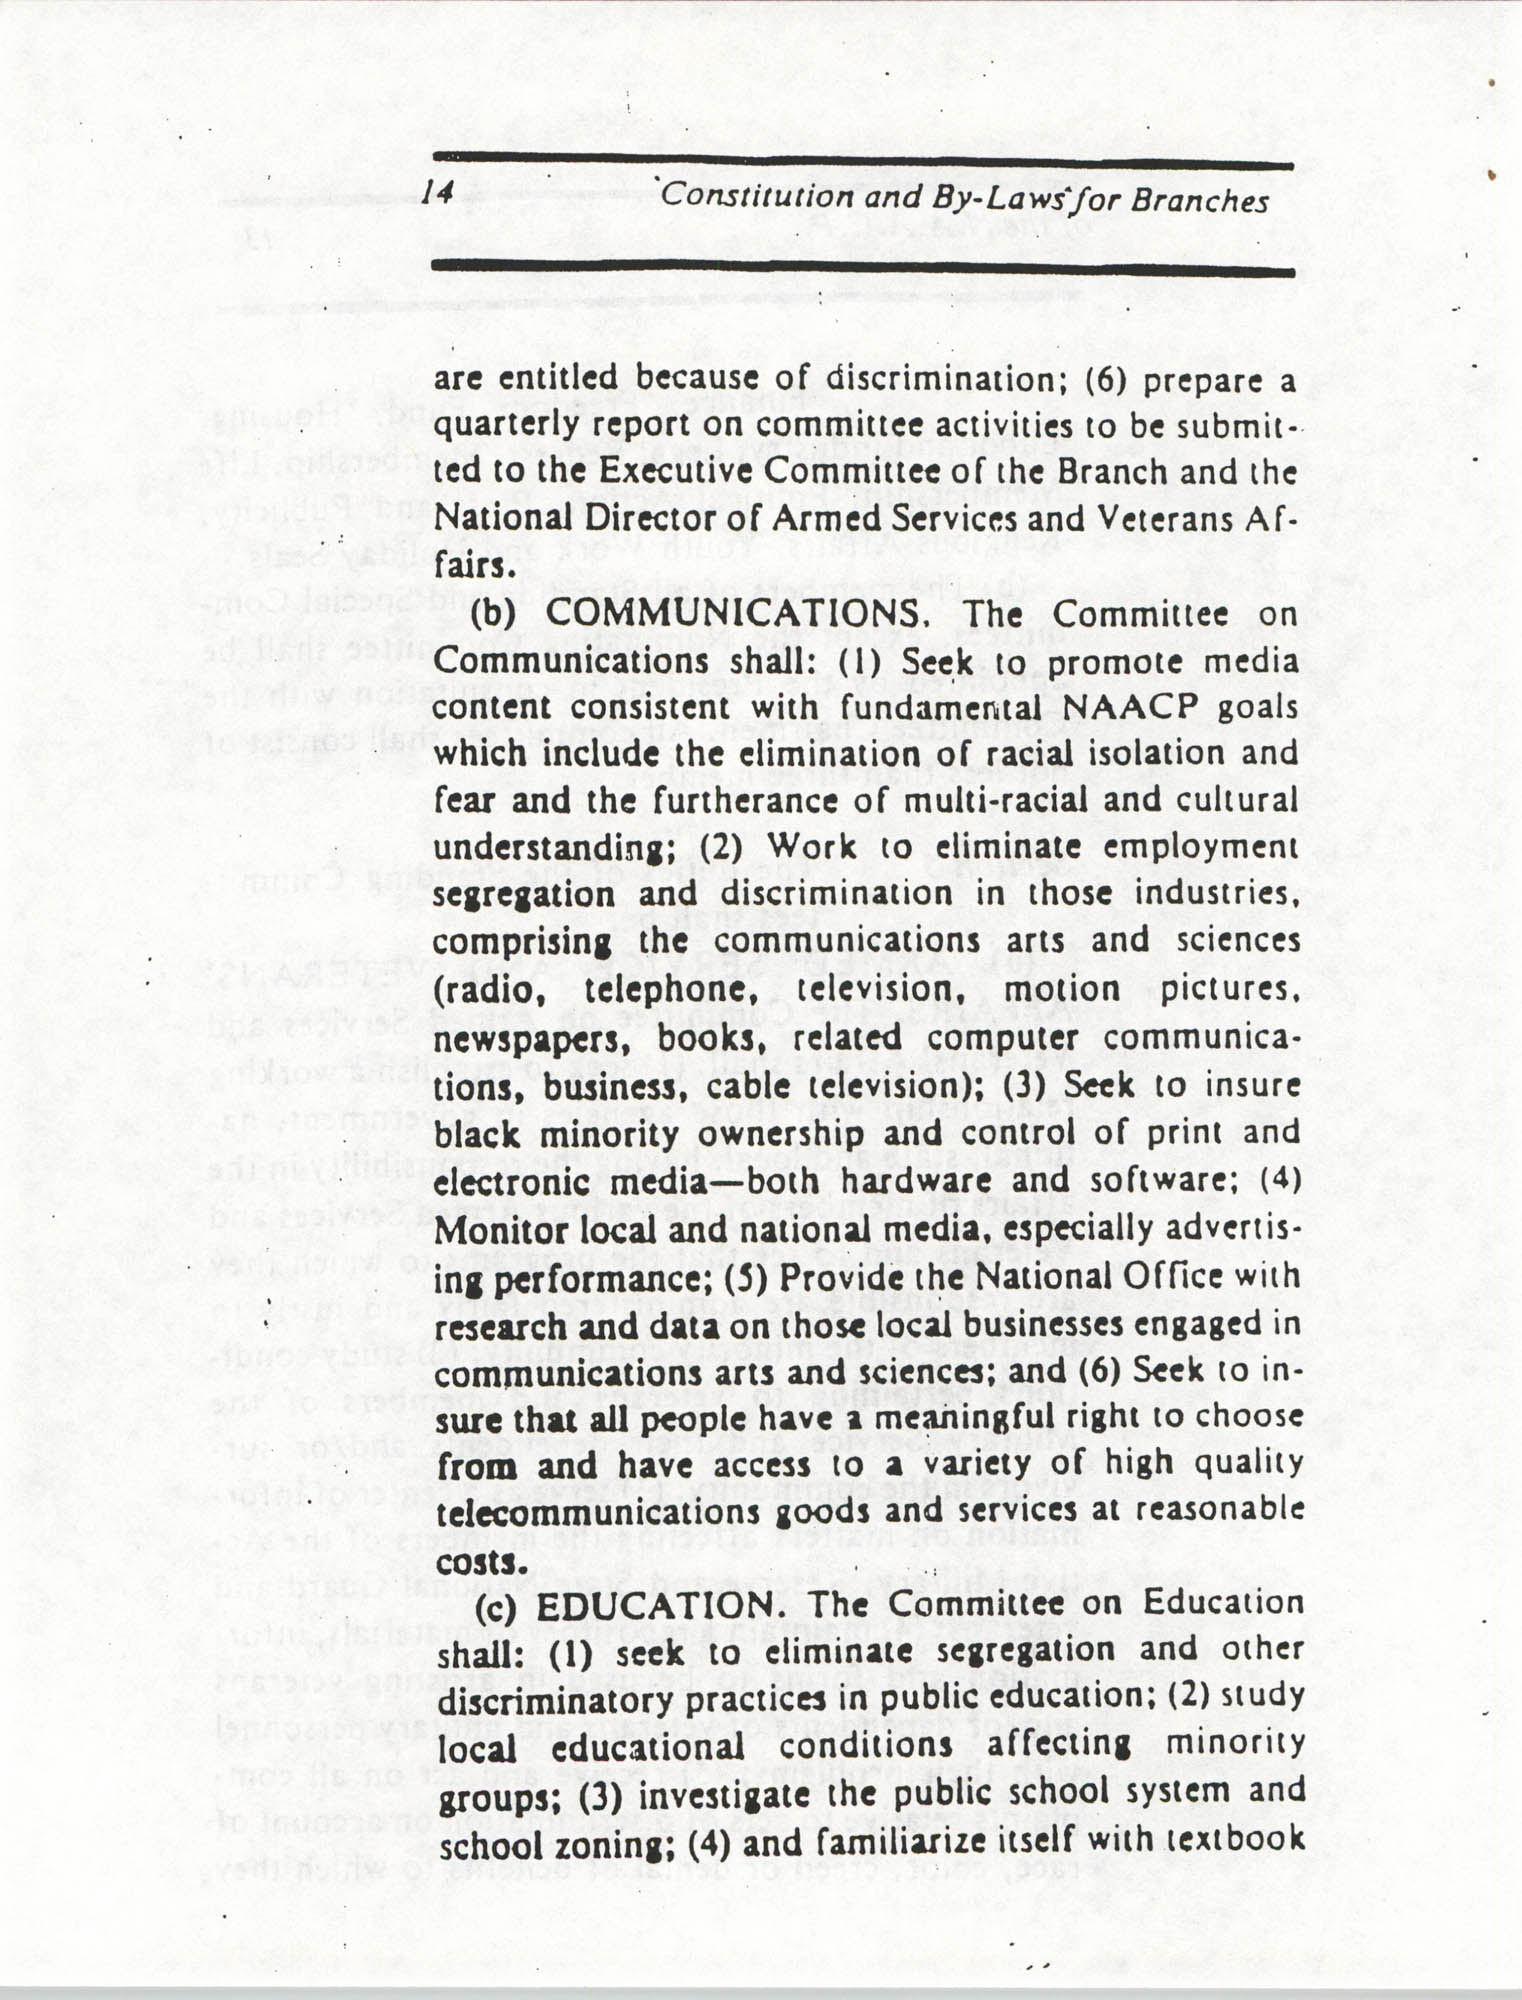 Constitution and By-Laws for Branches of the NAACP, March 1992, Page 14